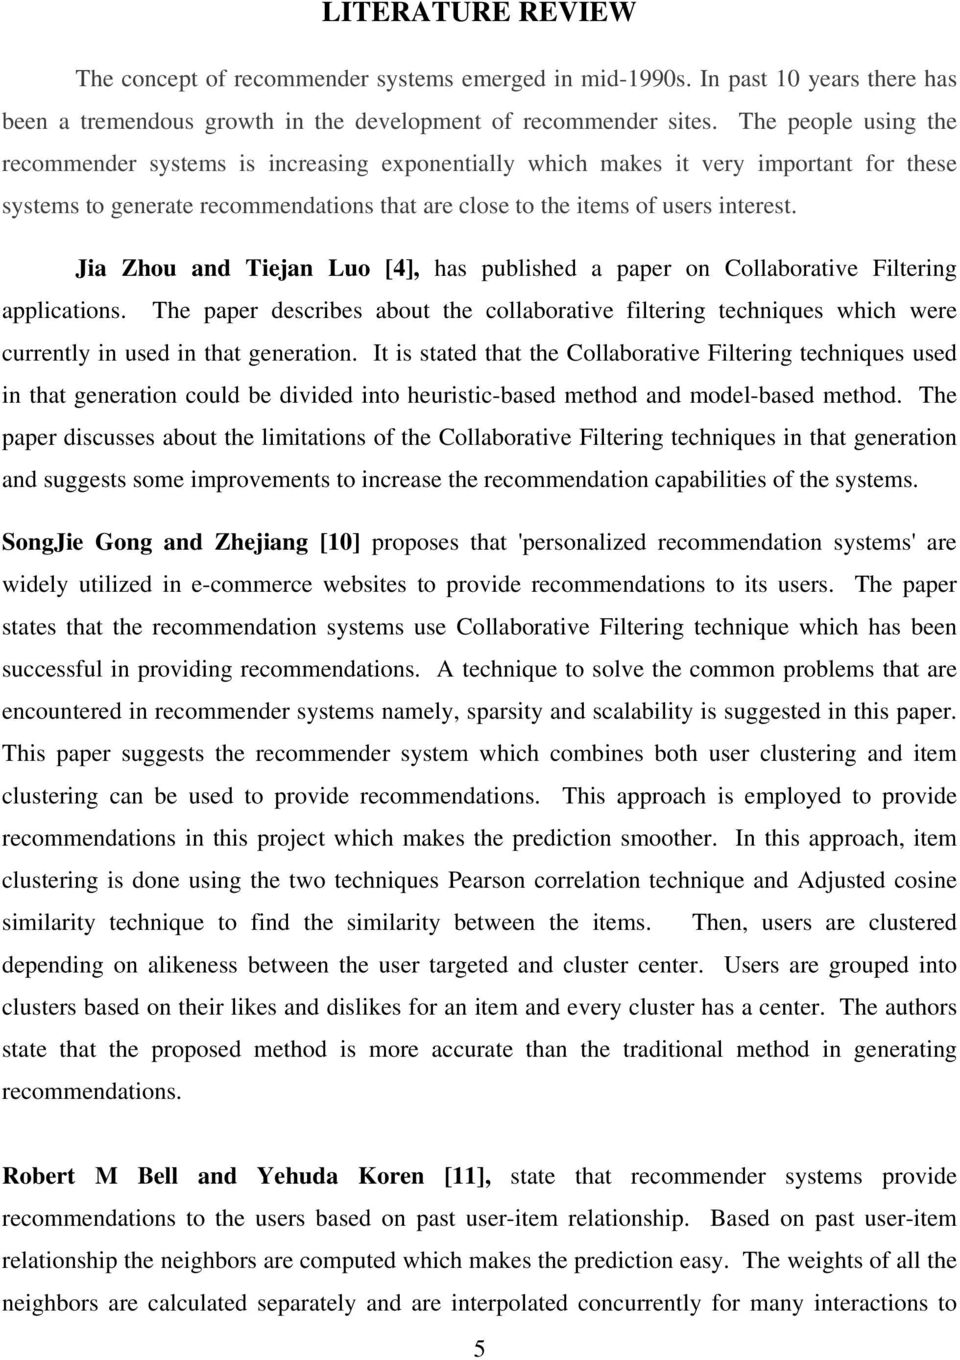 A Collaborative Filtering Recommendation Algorithm Based On User